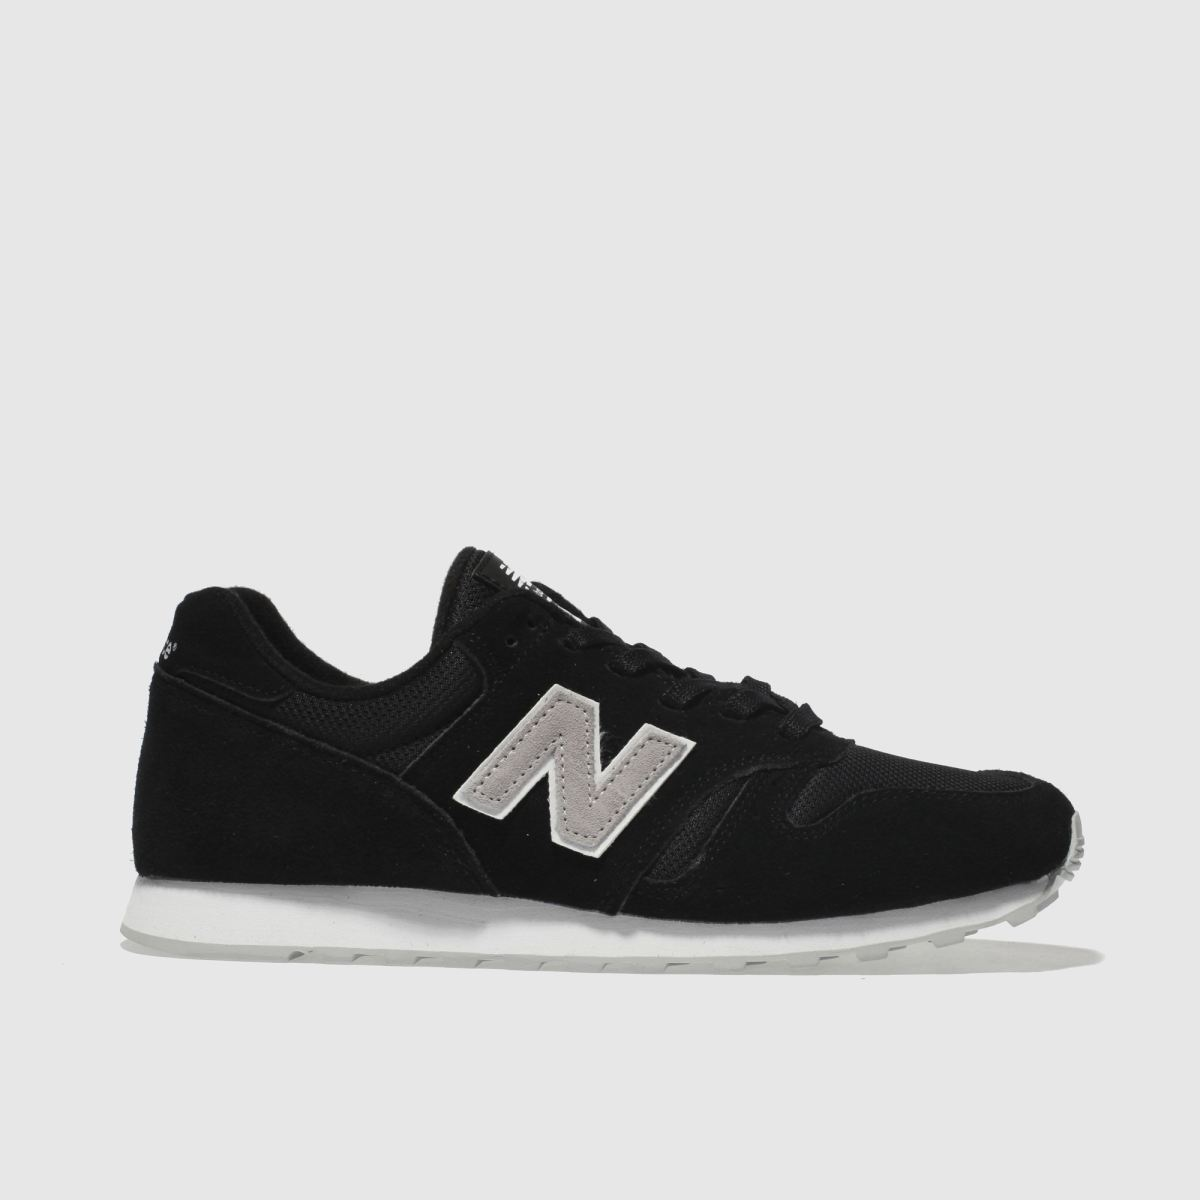 New Balance Black & Grey 373 V1 Suede Trainers